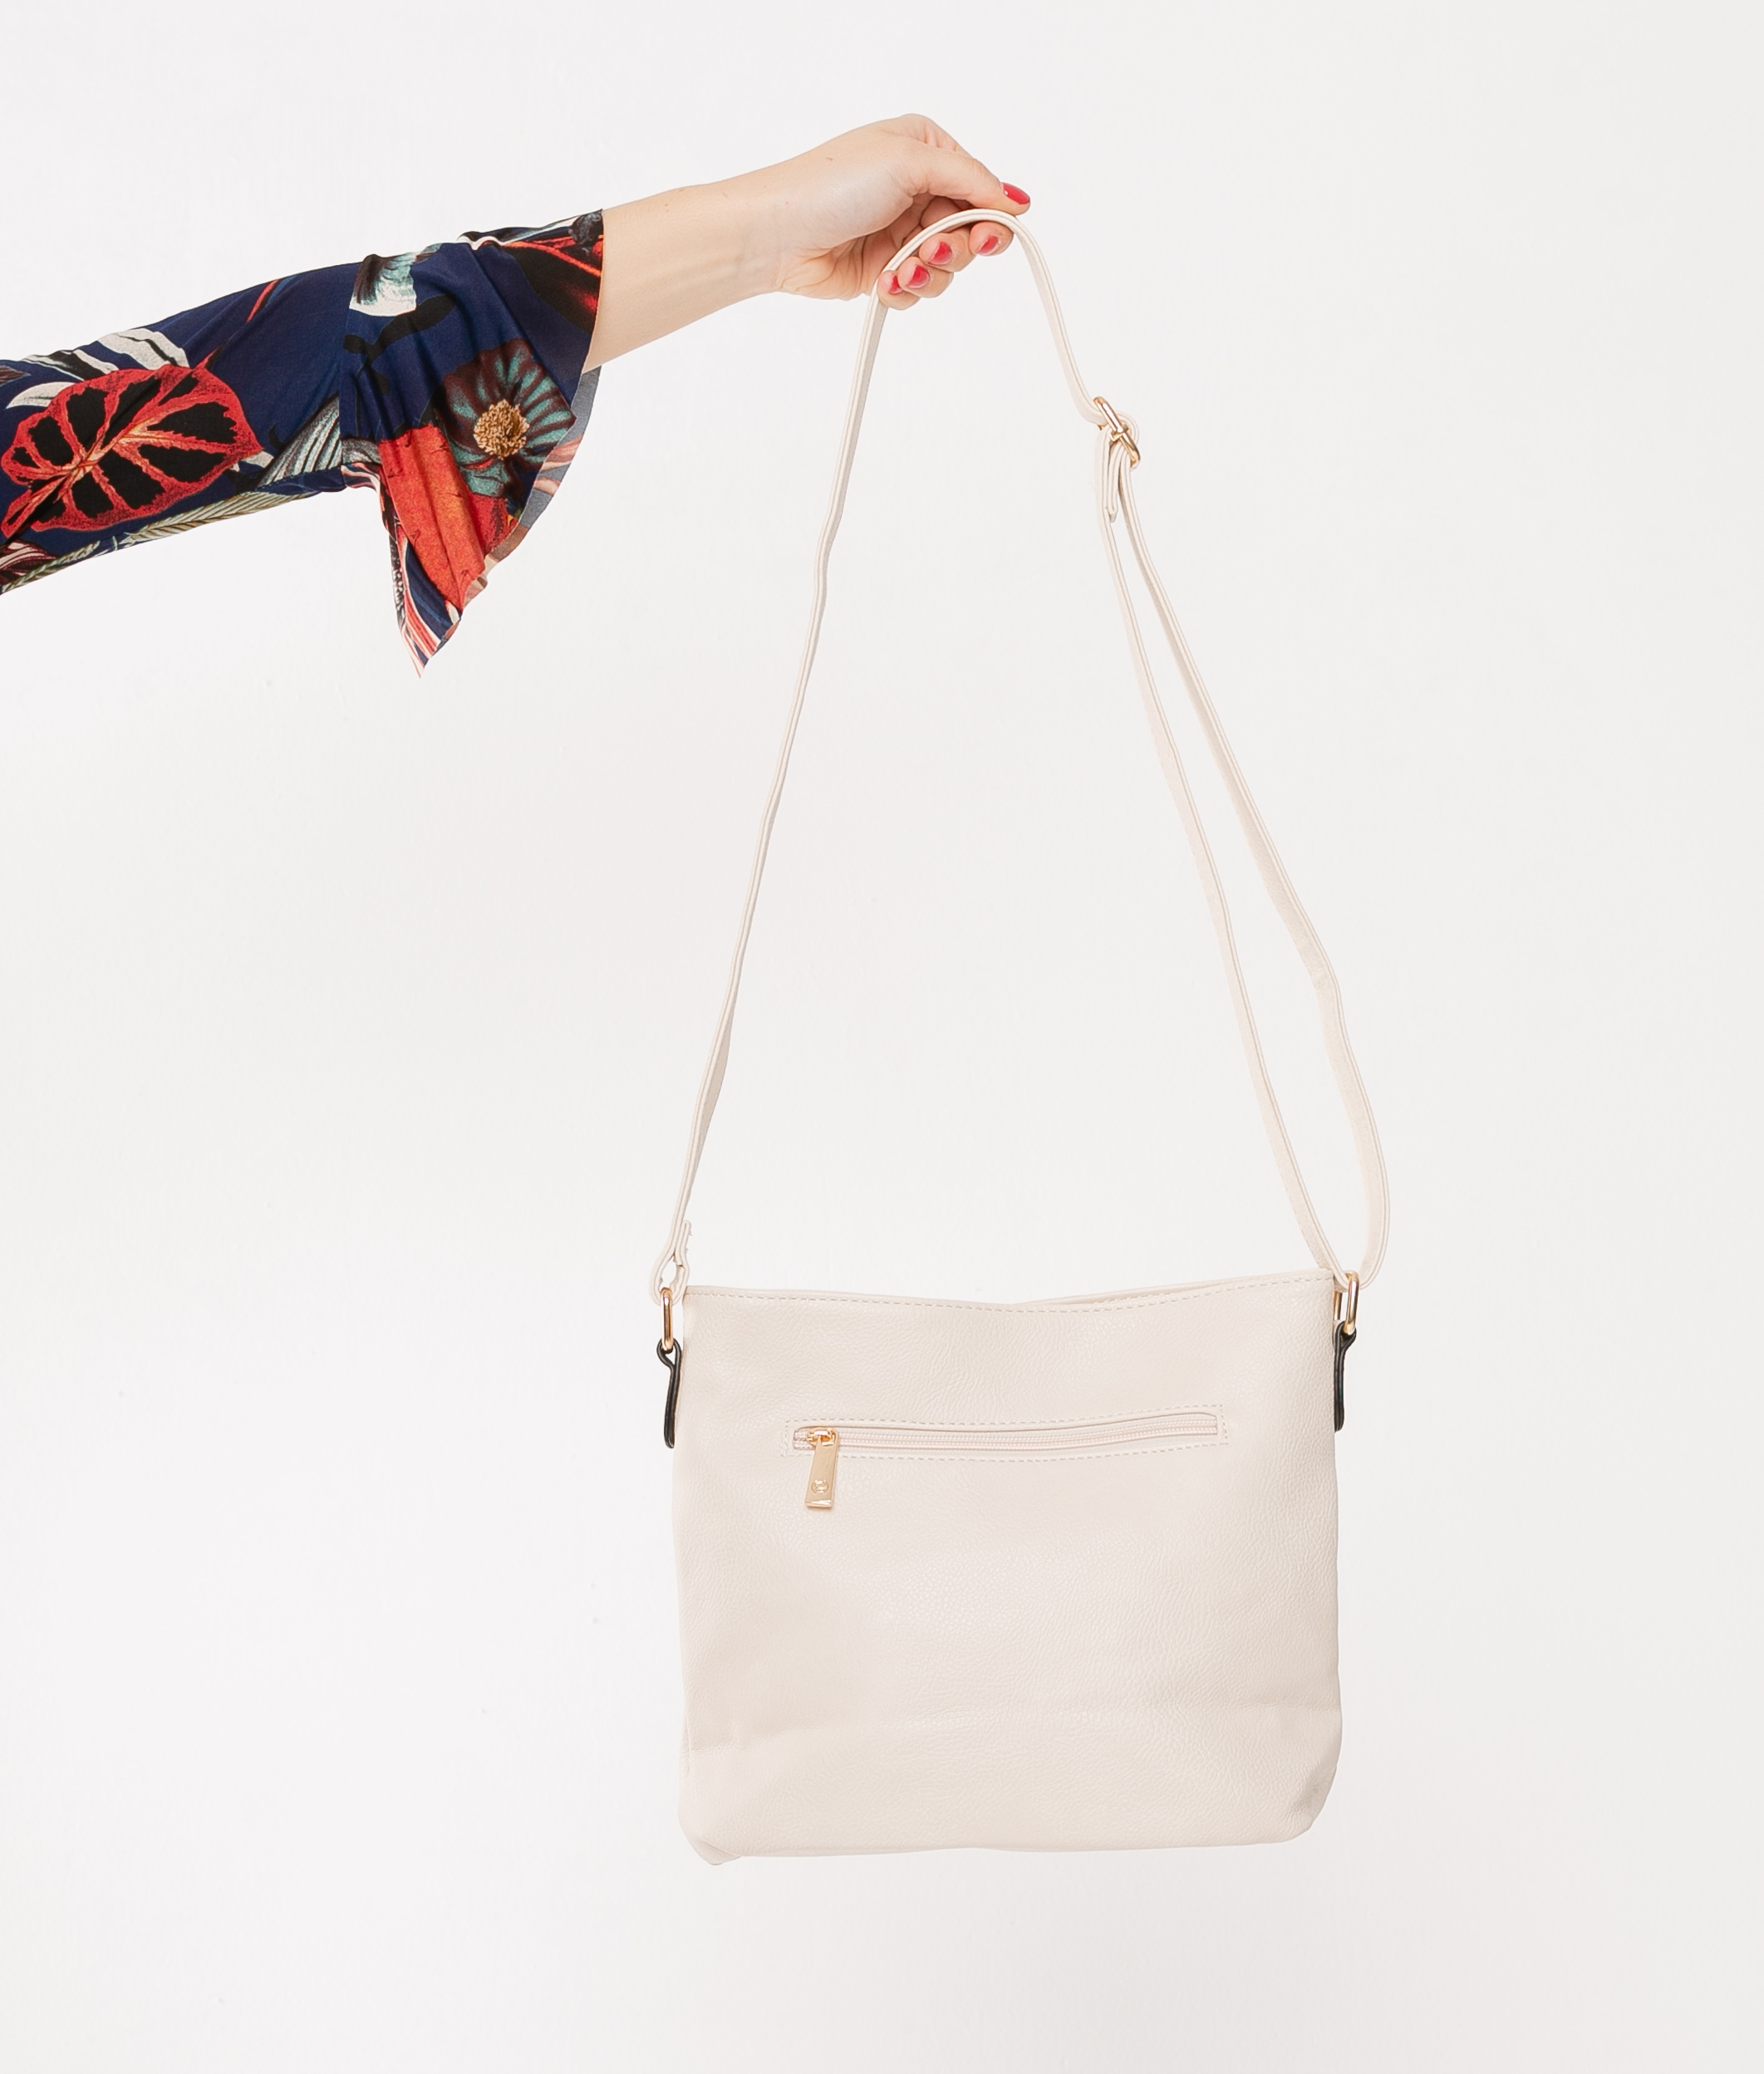 Shoulder bag Festín - Camel